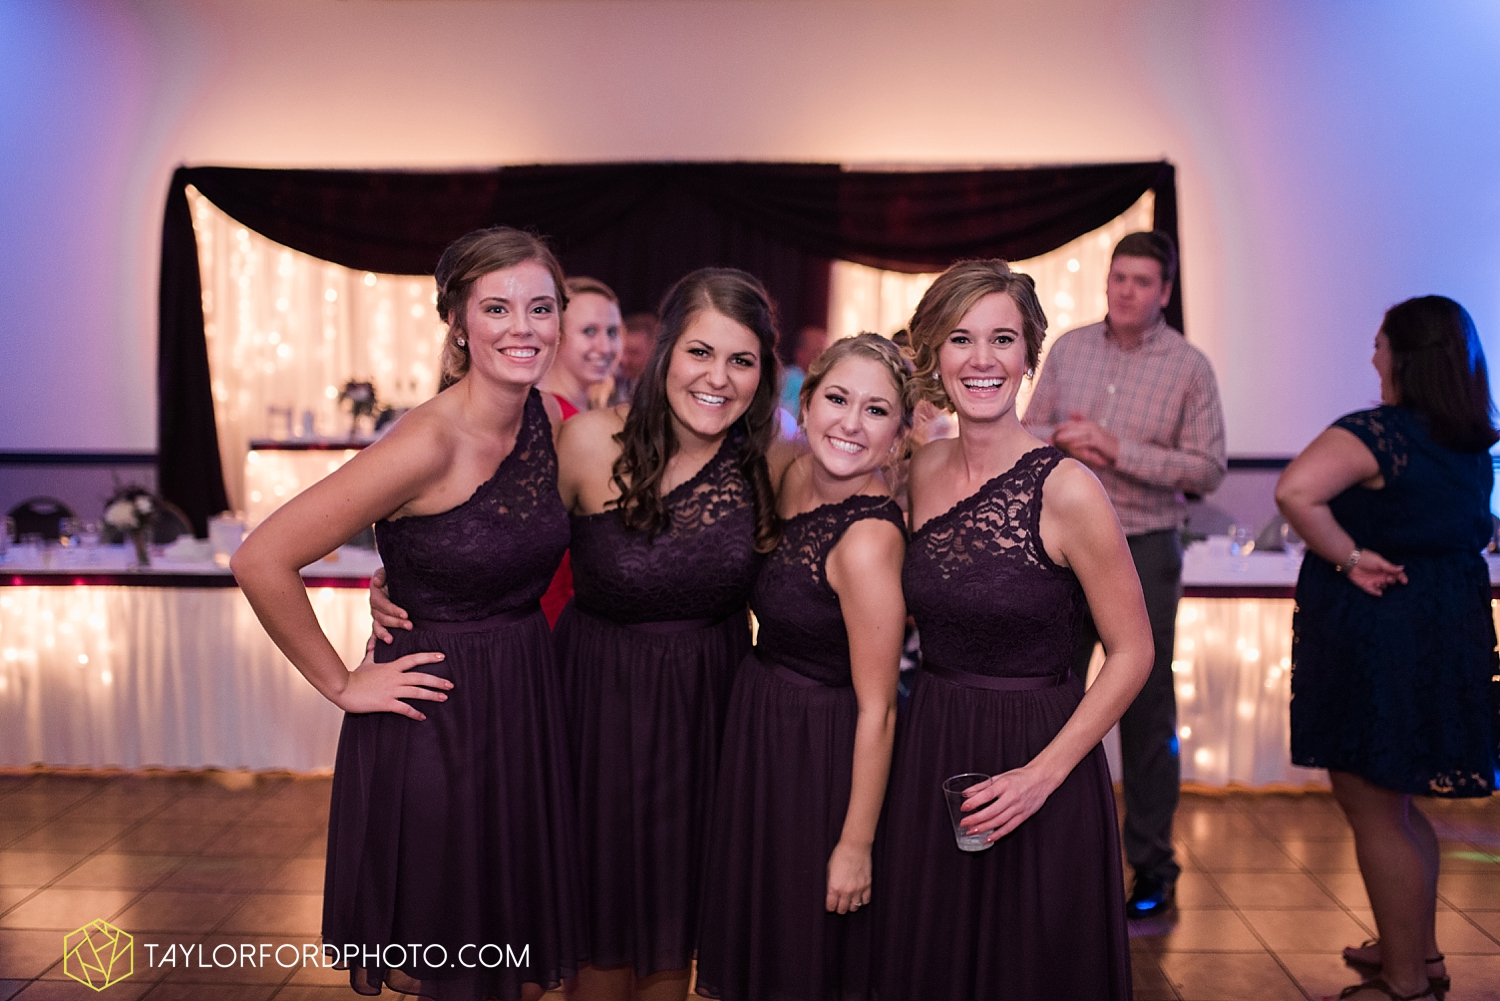 van_wert_ohio_fort_wayne_indiana_wedding_photographer_taylor_ford_cerutis_catering_2849.jpg